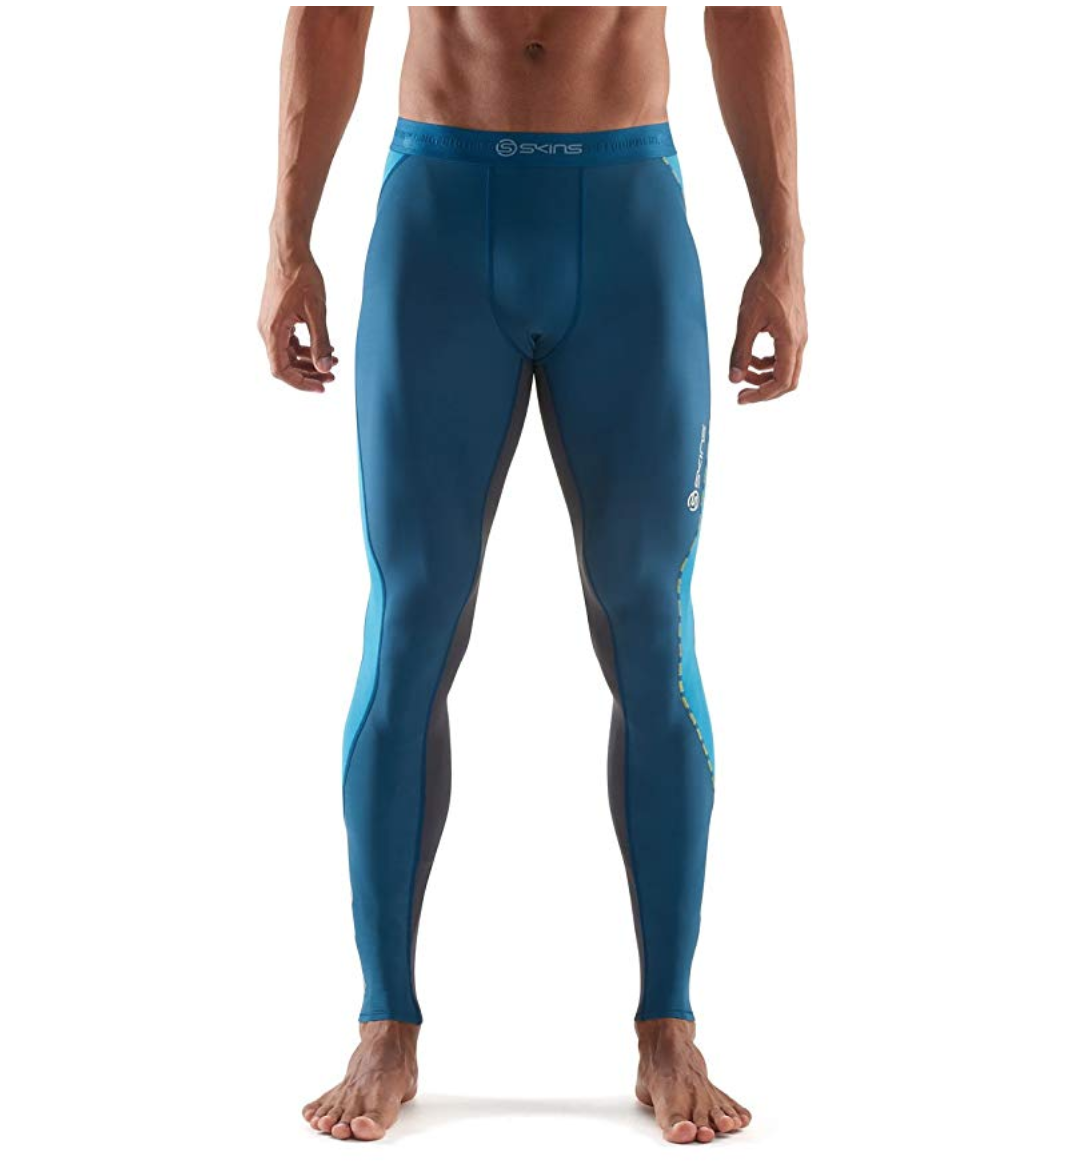 Skins Dynamic Core - Best Men's Running Tights 2019